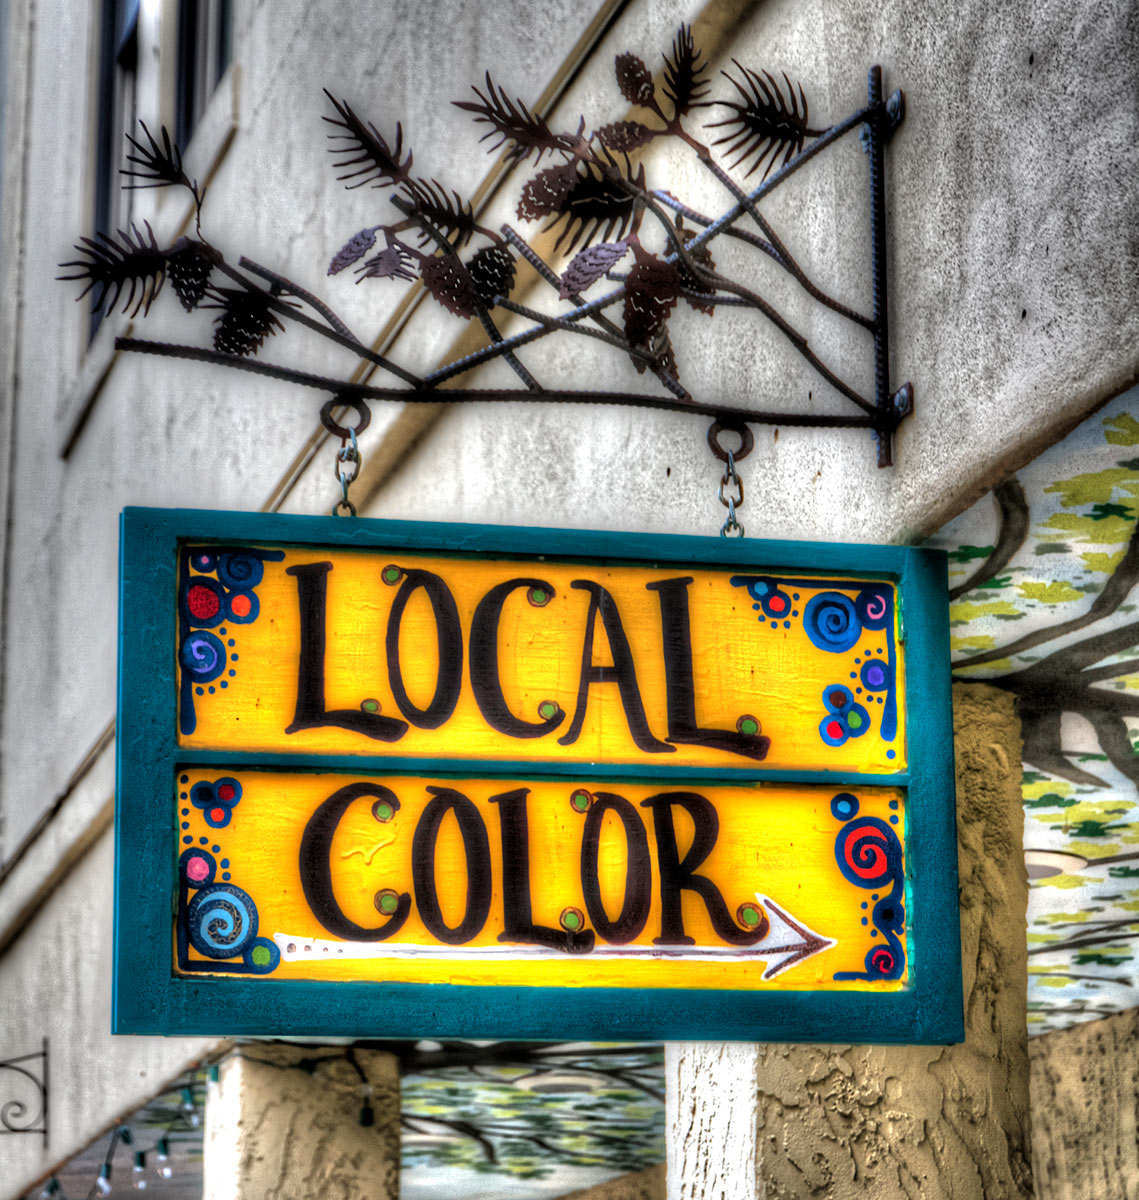 Local-Color-sign-db